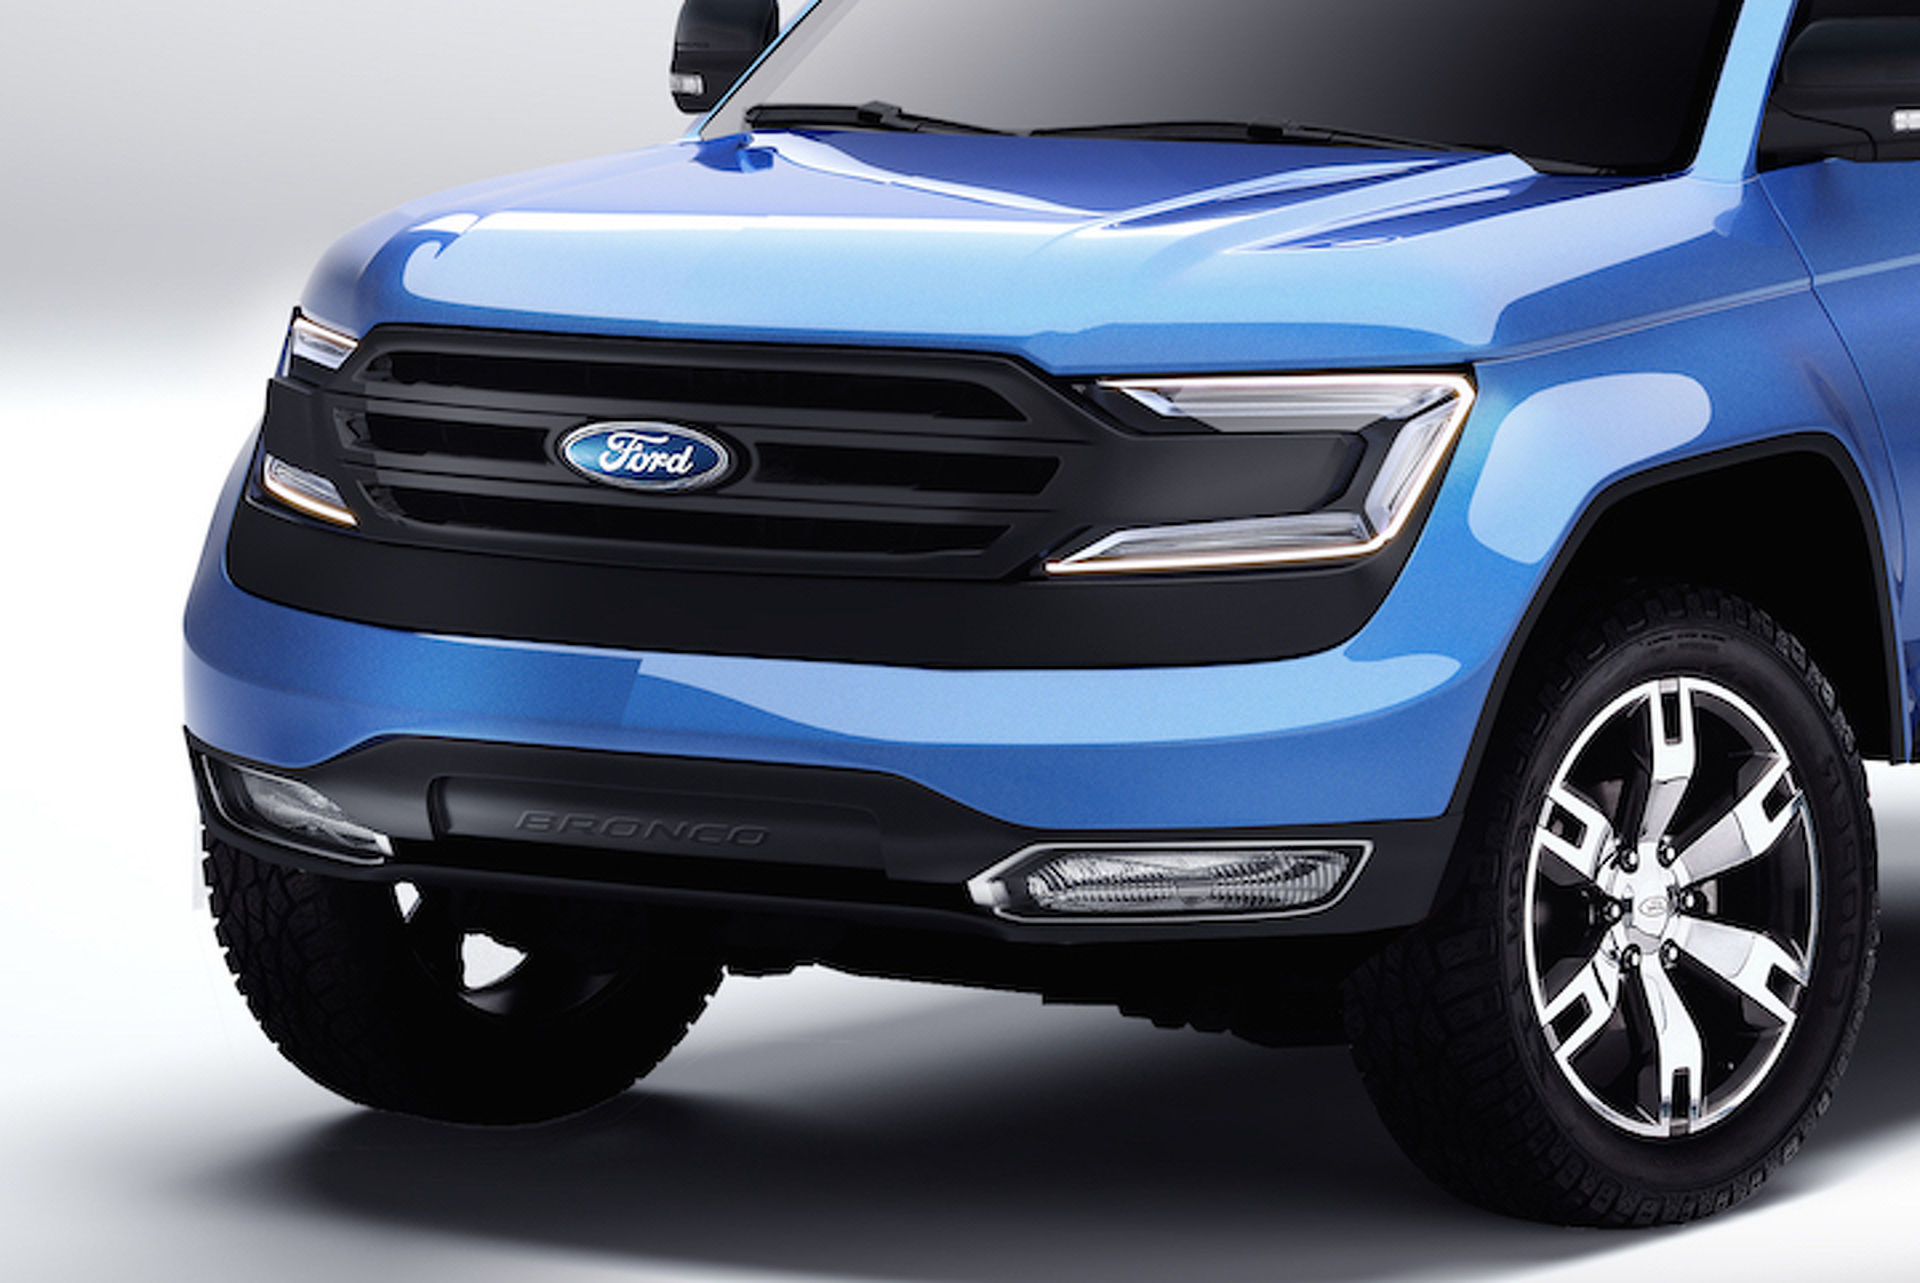 4 Things To Know About The 2017 Ford Bronco When It Returns